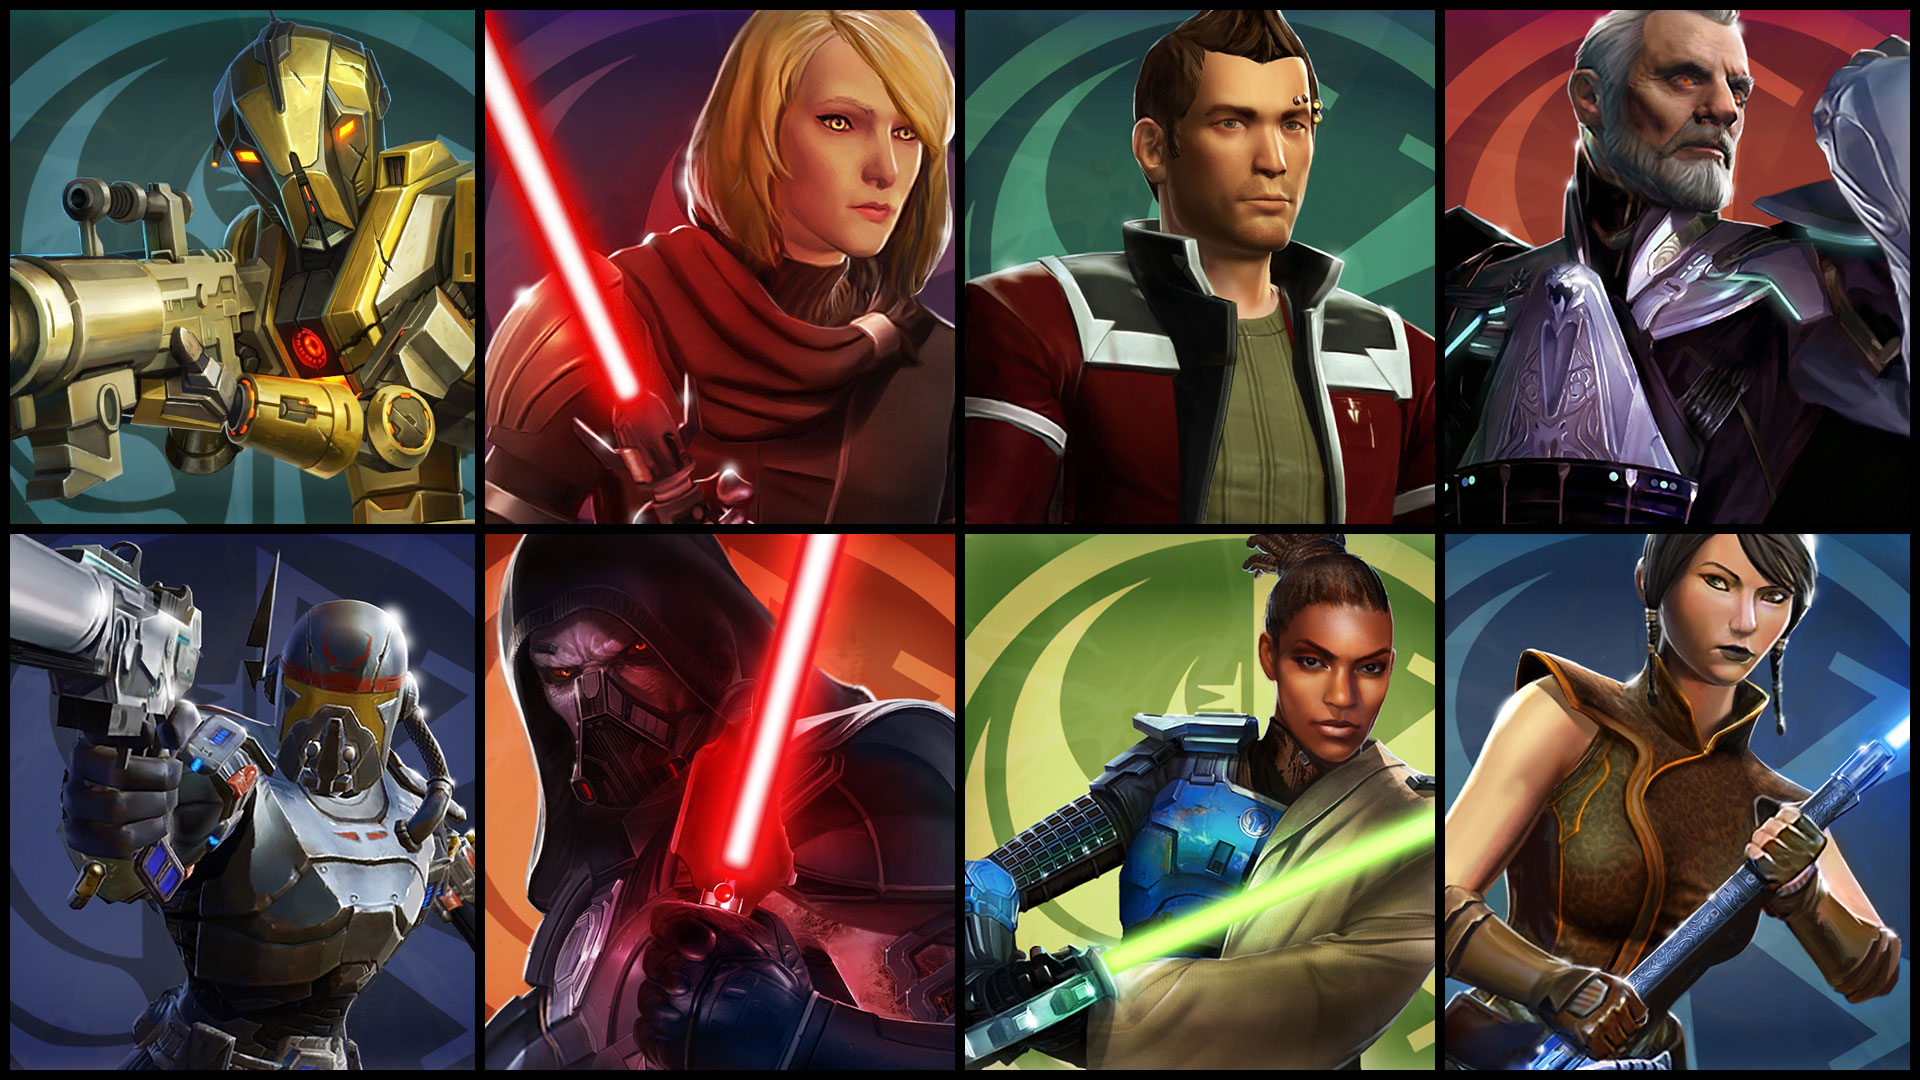 Swtor Crossplay Guide Does The Old Republic Have Crossplay